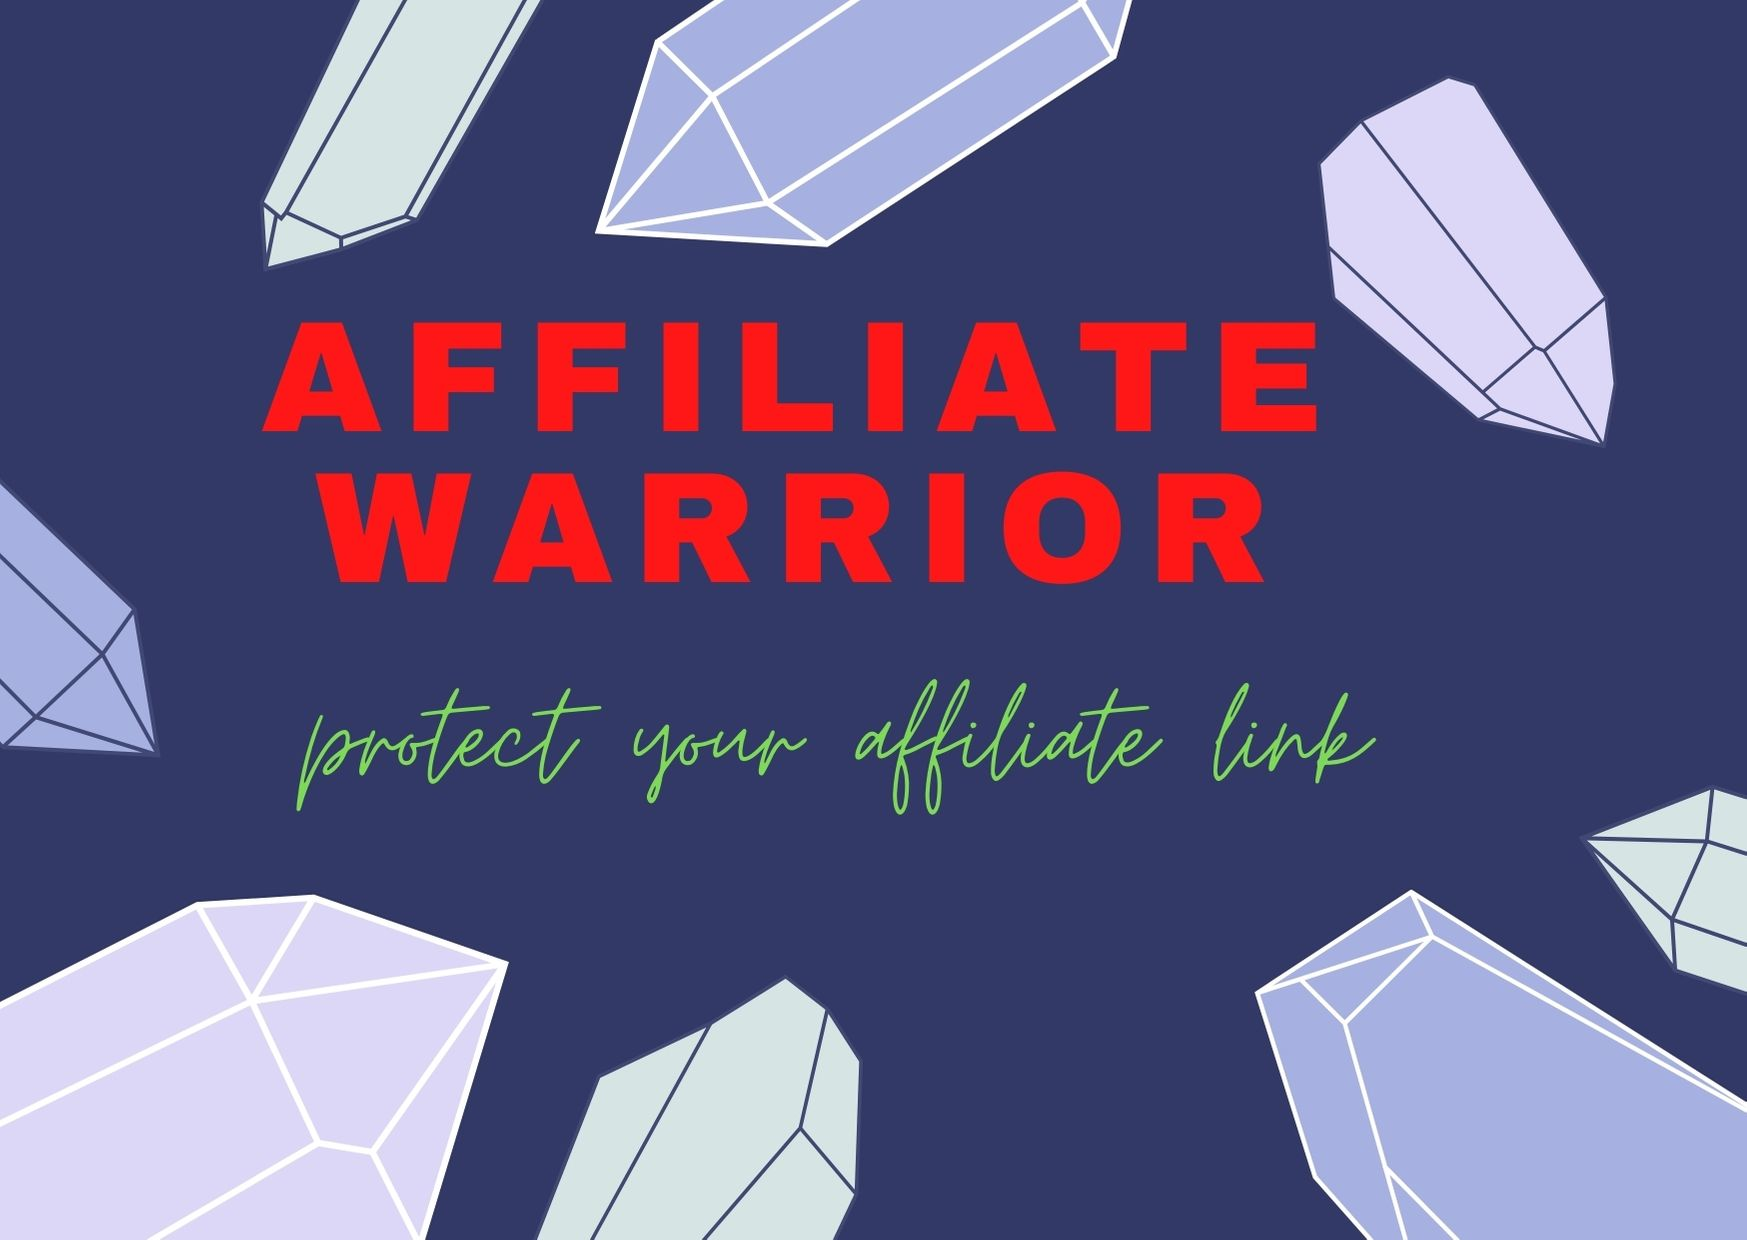 A novel software solution to safeguard your affiliate link